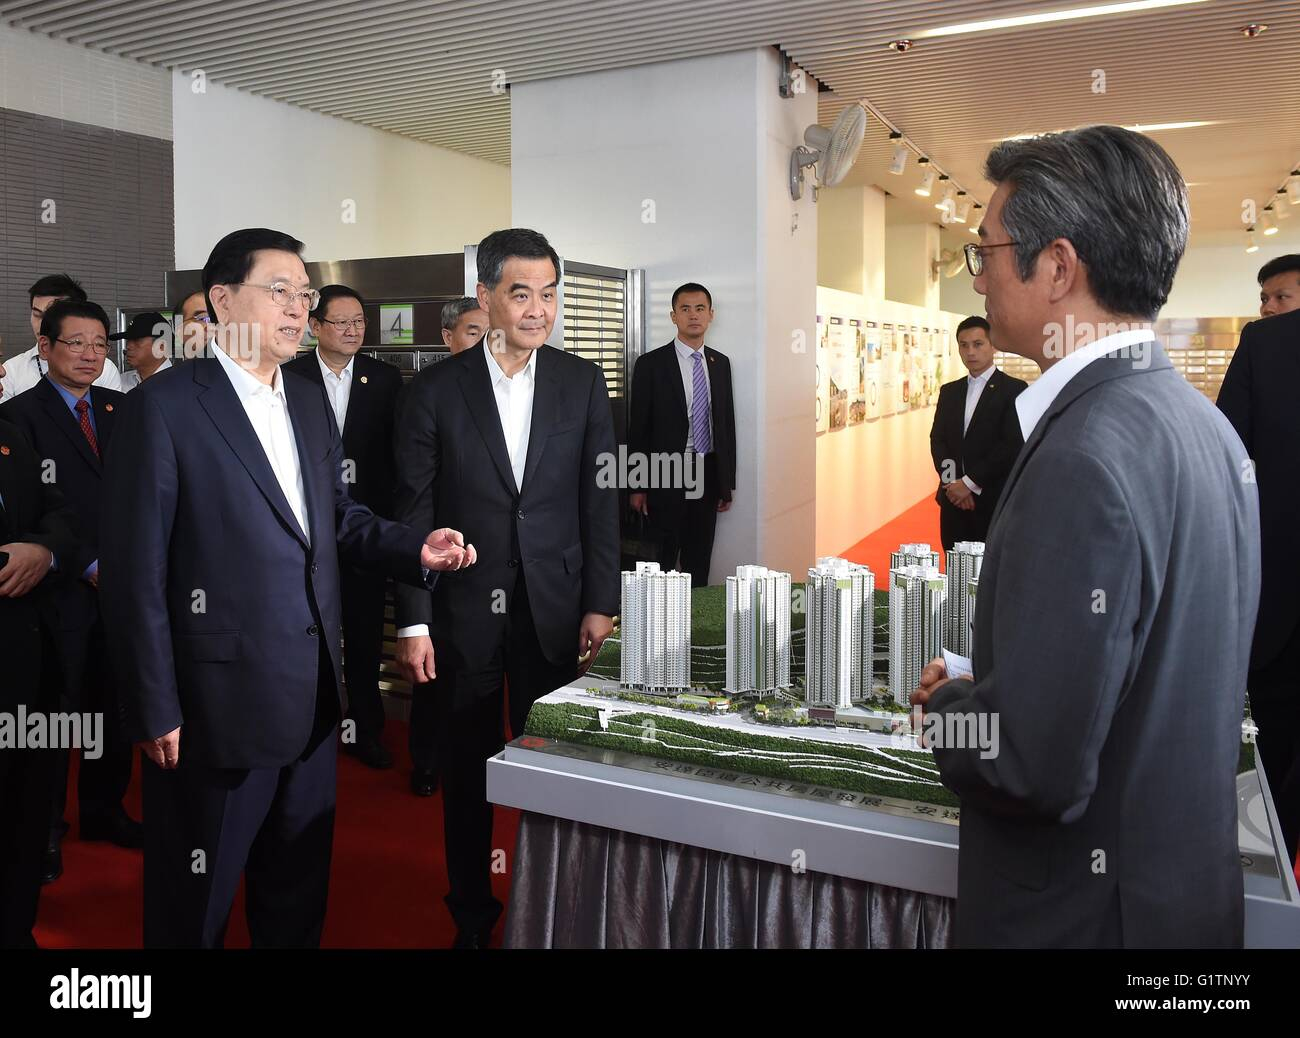 Hong Kong, China. 19th May, 2016. Zhang Dejiang (1st L, front), chairman of the Standing Committee of China's National Stock Photo